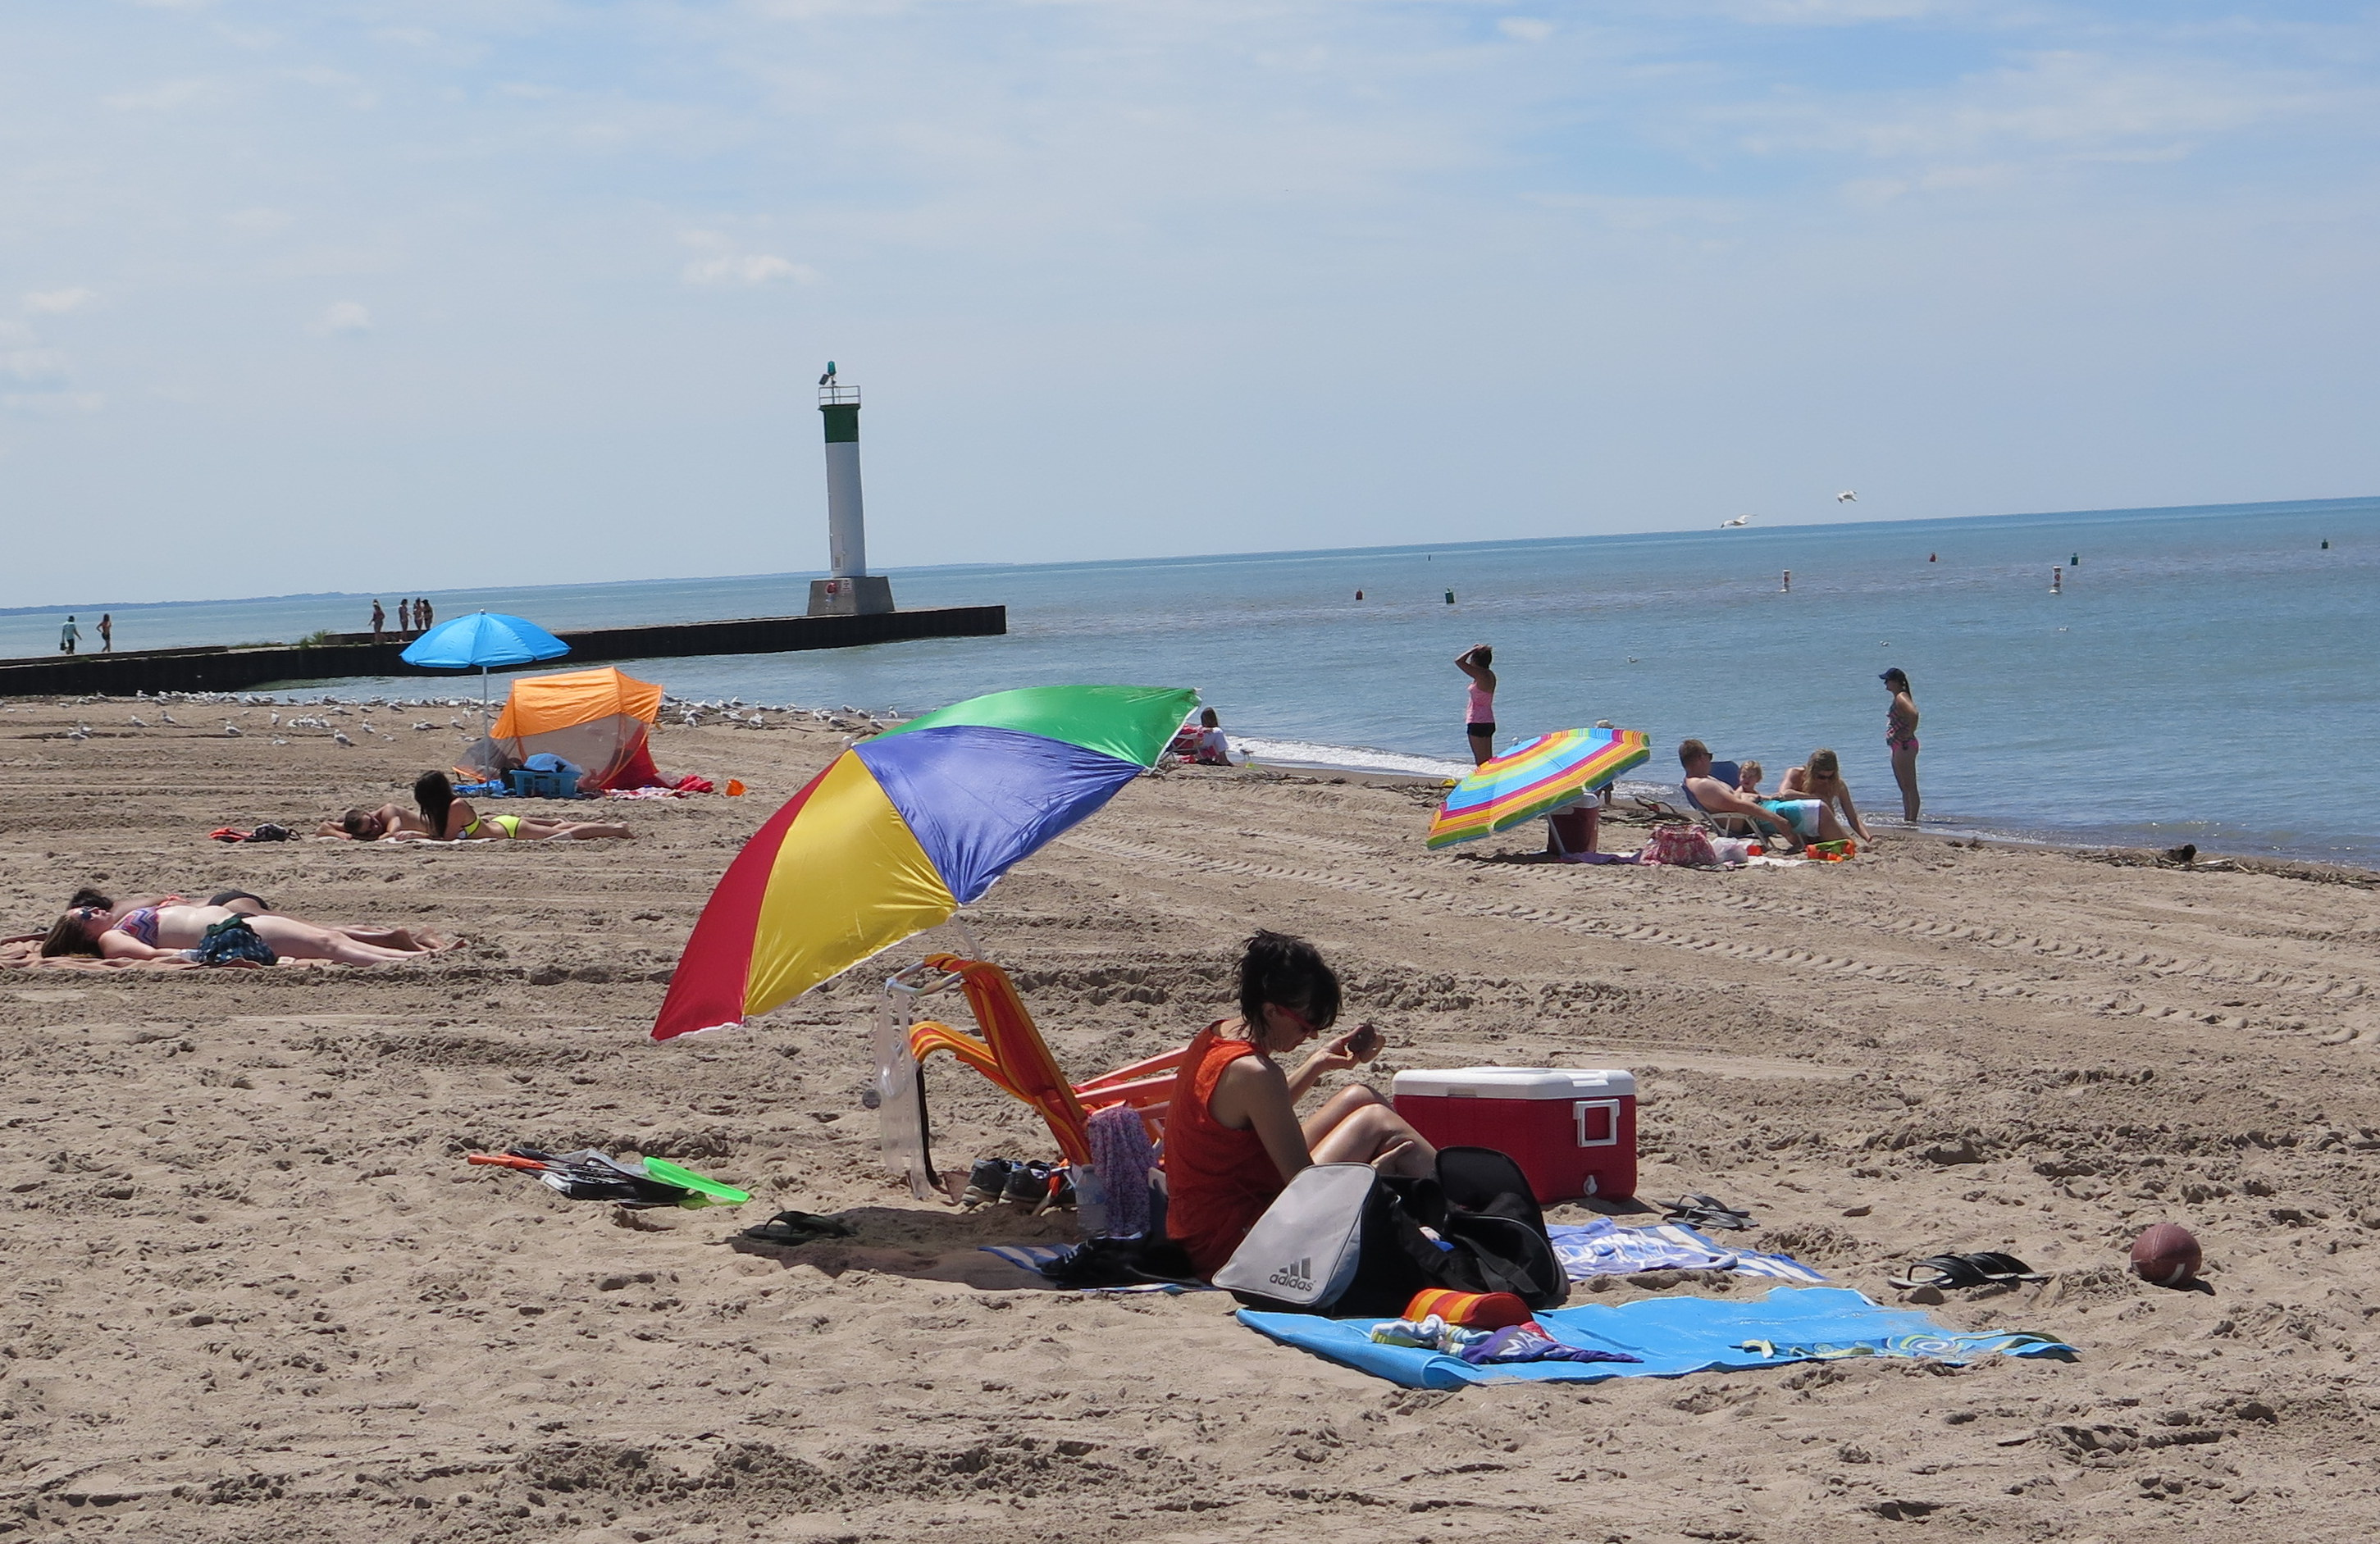 Grand Bend has one of Ontario's top beaches.